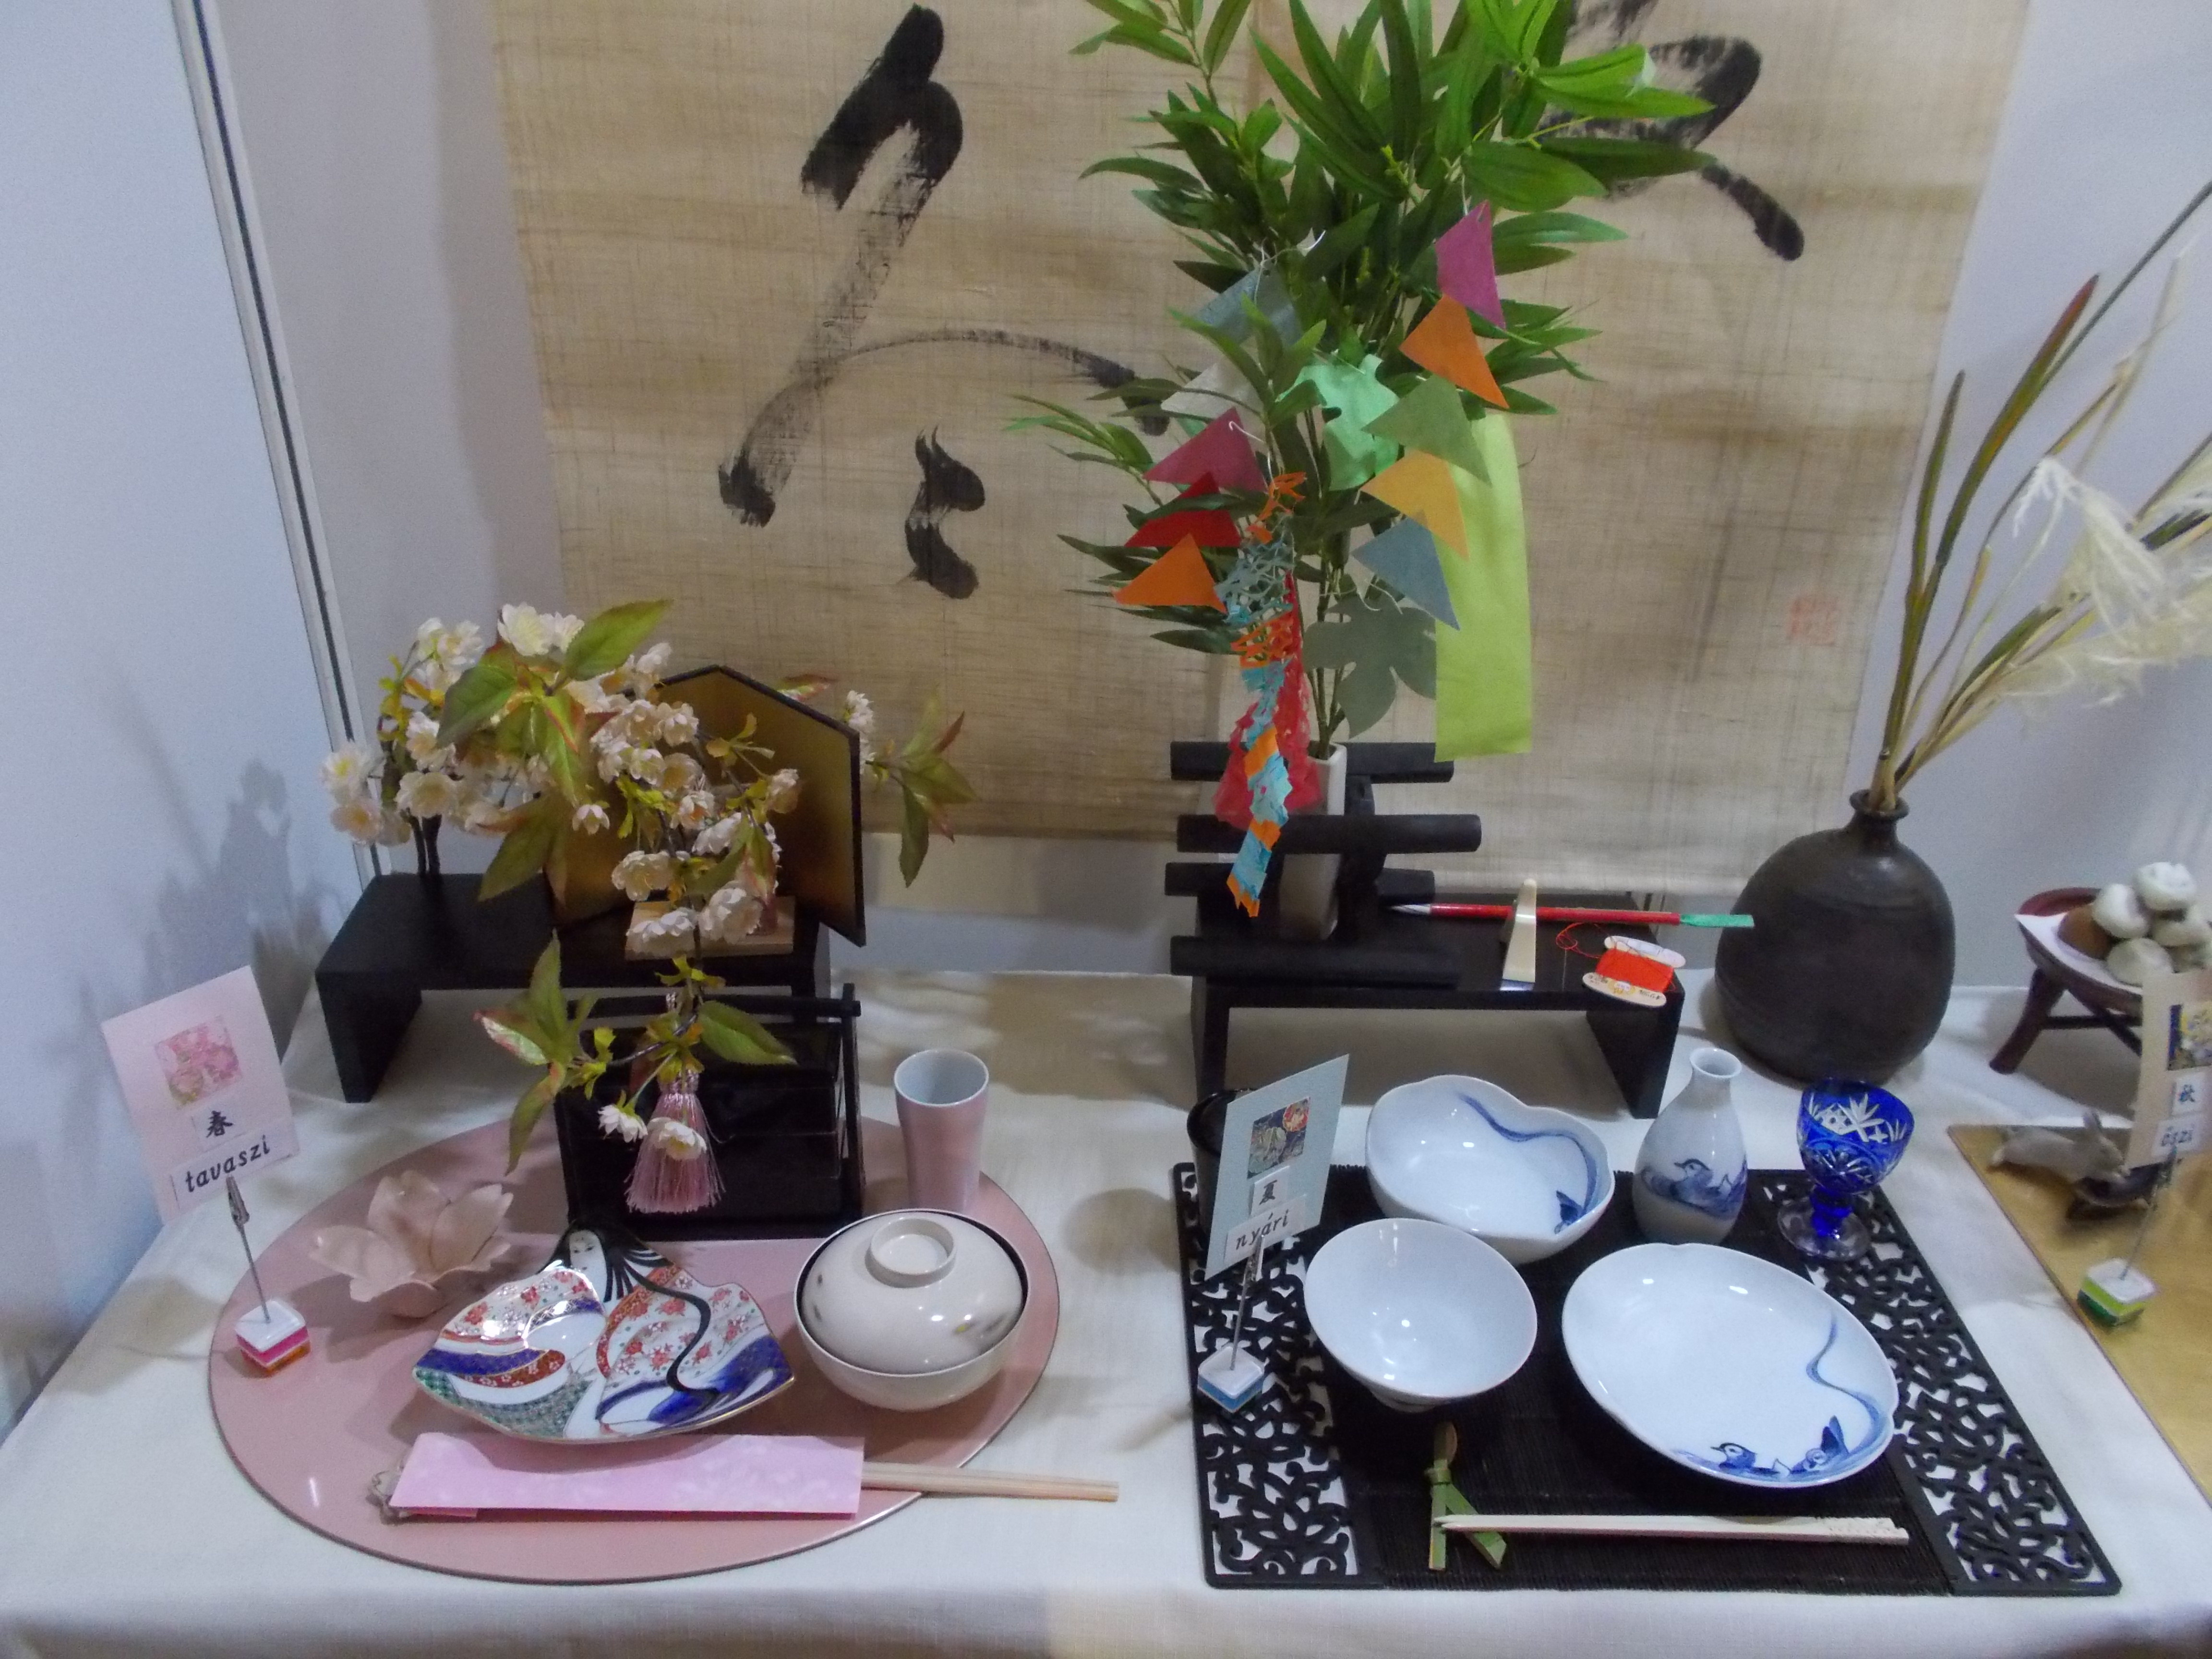 FileJapanese Festival in Vigadó. Japanese table setting to spring and summer by Nishikawa & File:Japanese Festival in Vigadó. Japanese table setting to spring ...